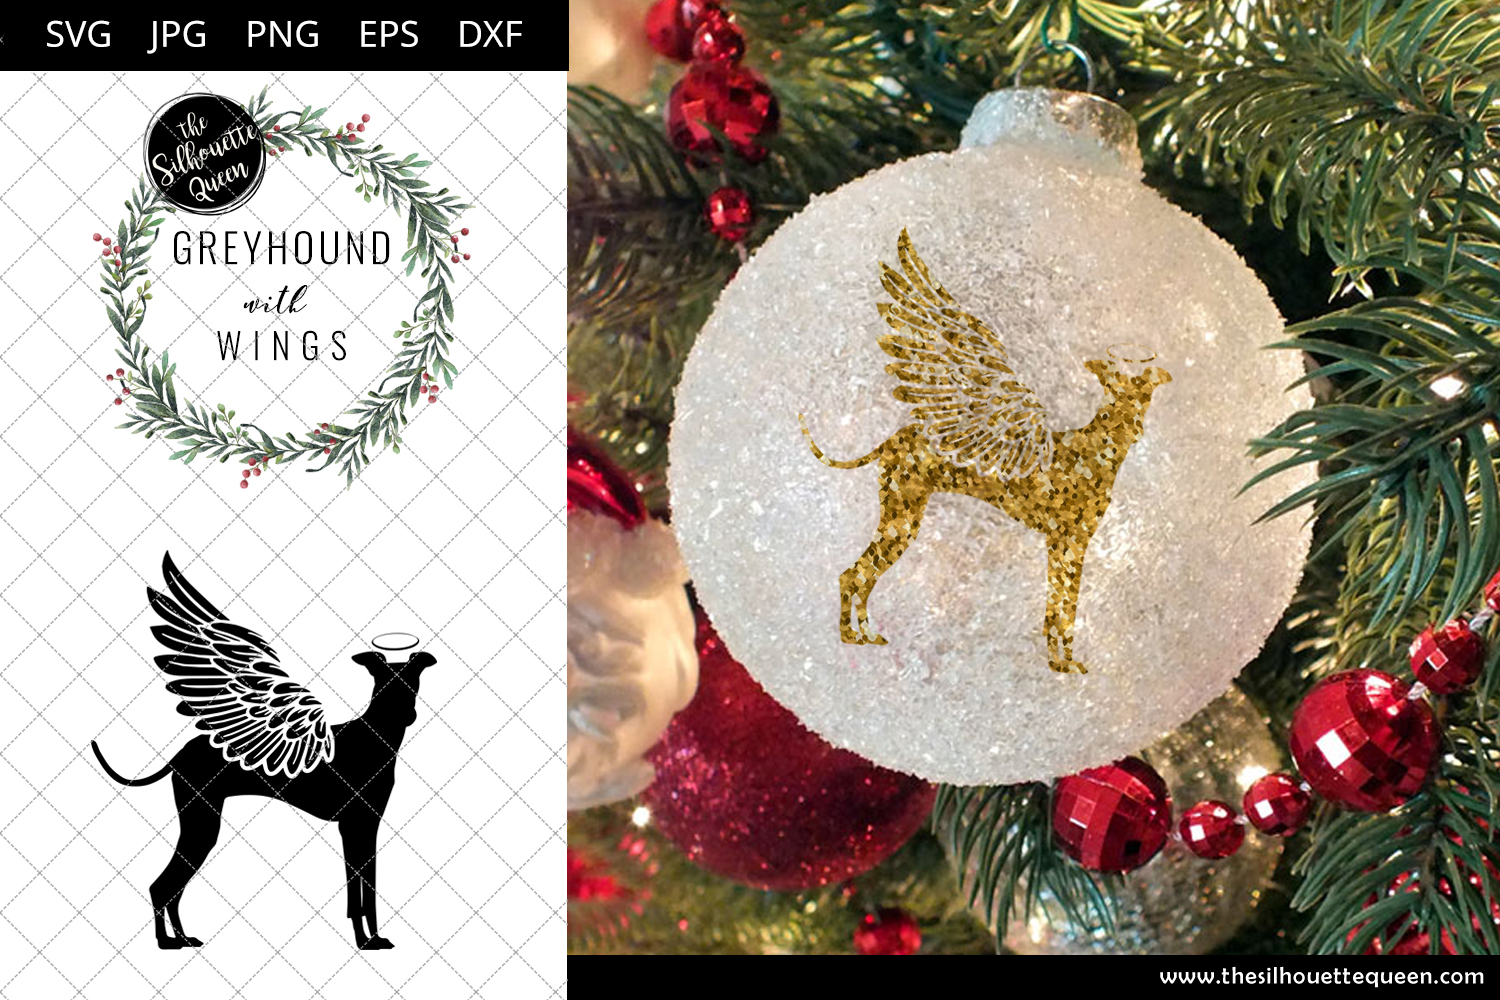 Download Free Greyhound 4 With Wings Graphic By Thesilhouettequeenshop for Cricut Explore, Silhouette and other cutting machines.